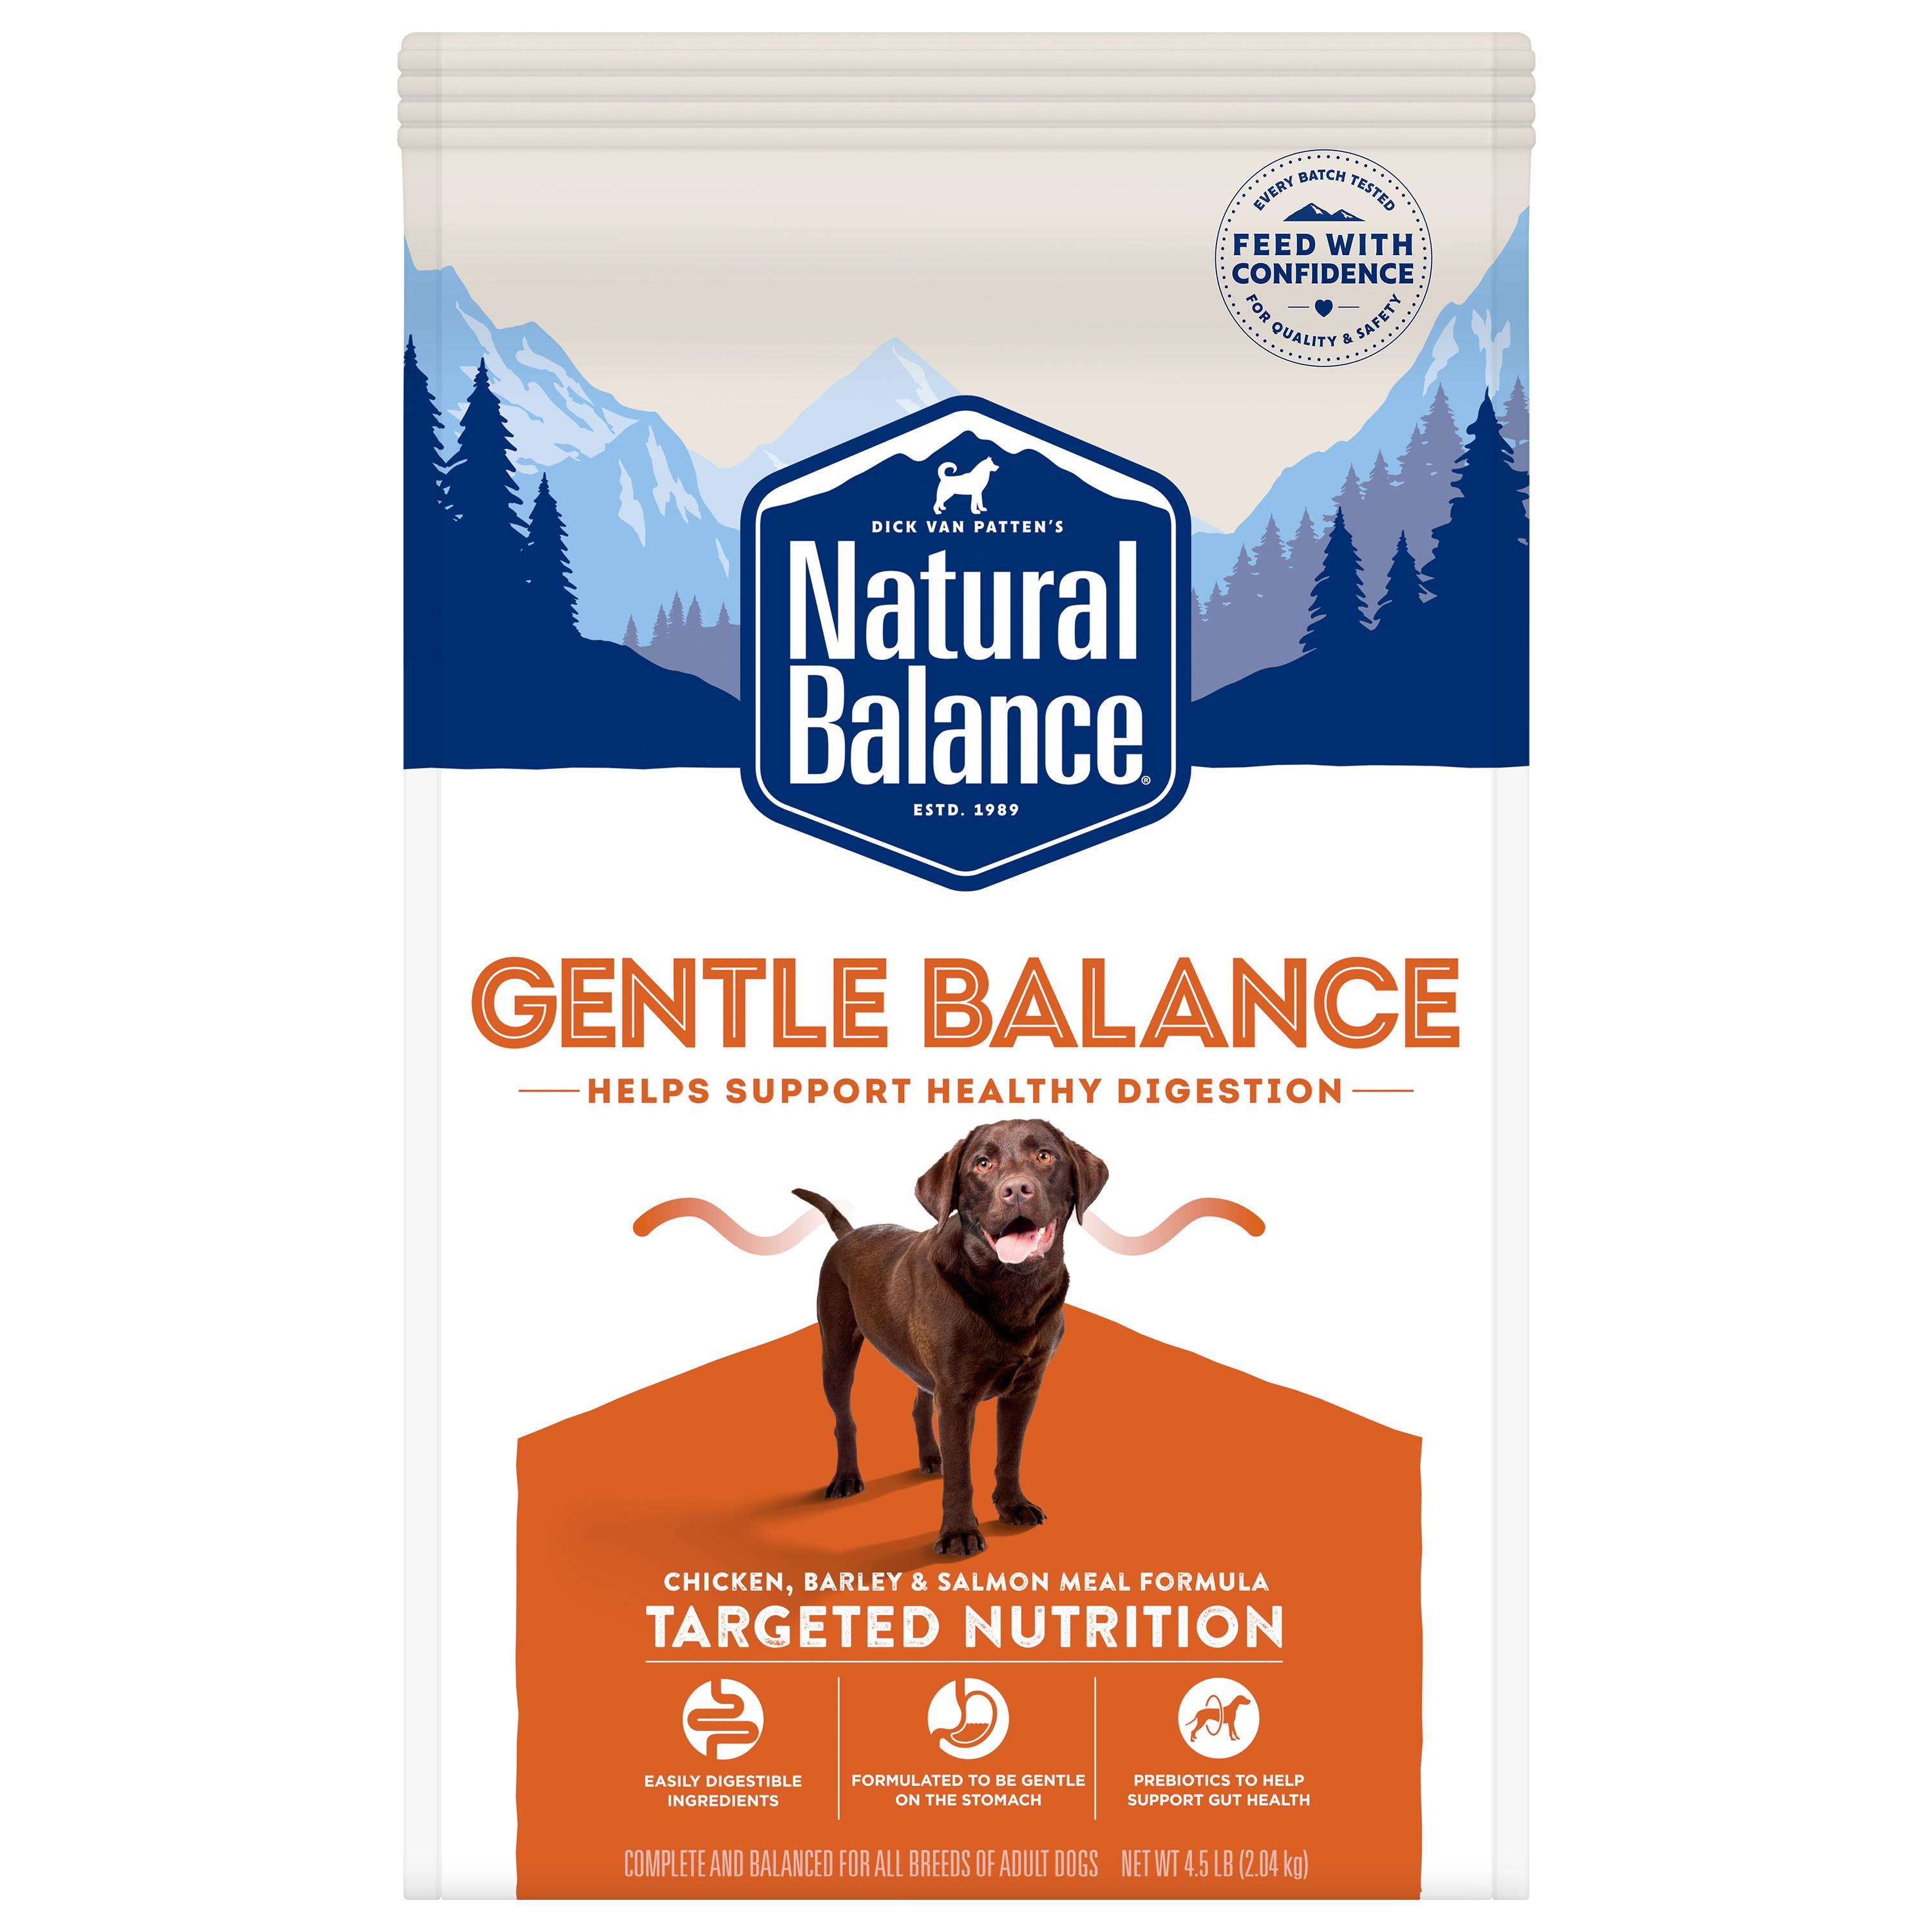 Natural Balance Targeted Nutrition Gentle Balance Chicken, Barley & Salmon Dry Dog Food, 4.5-lb